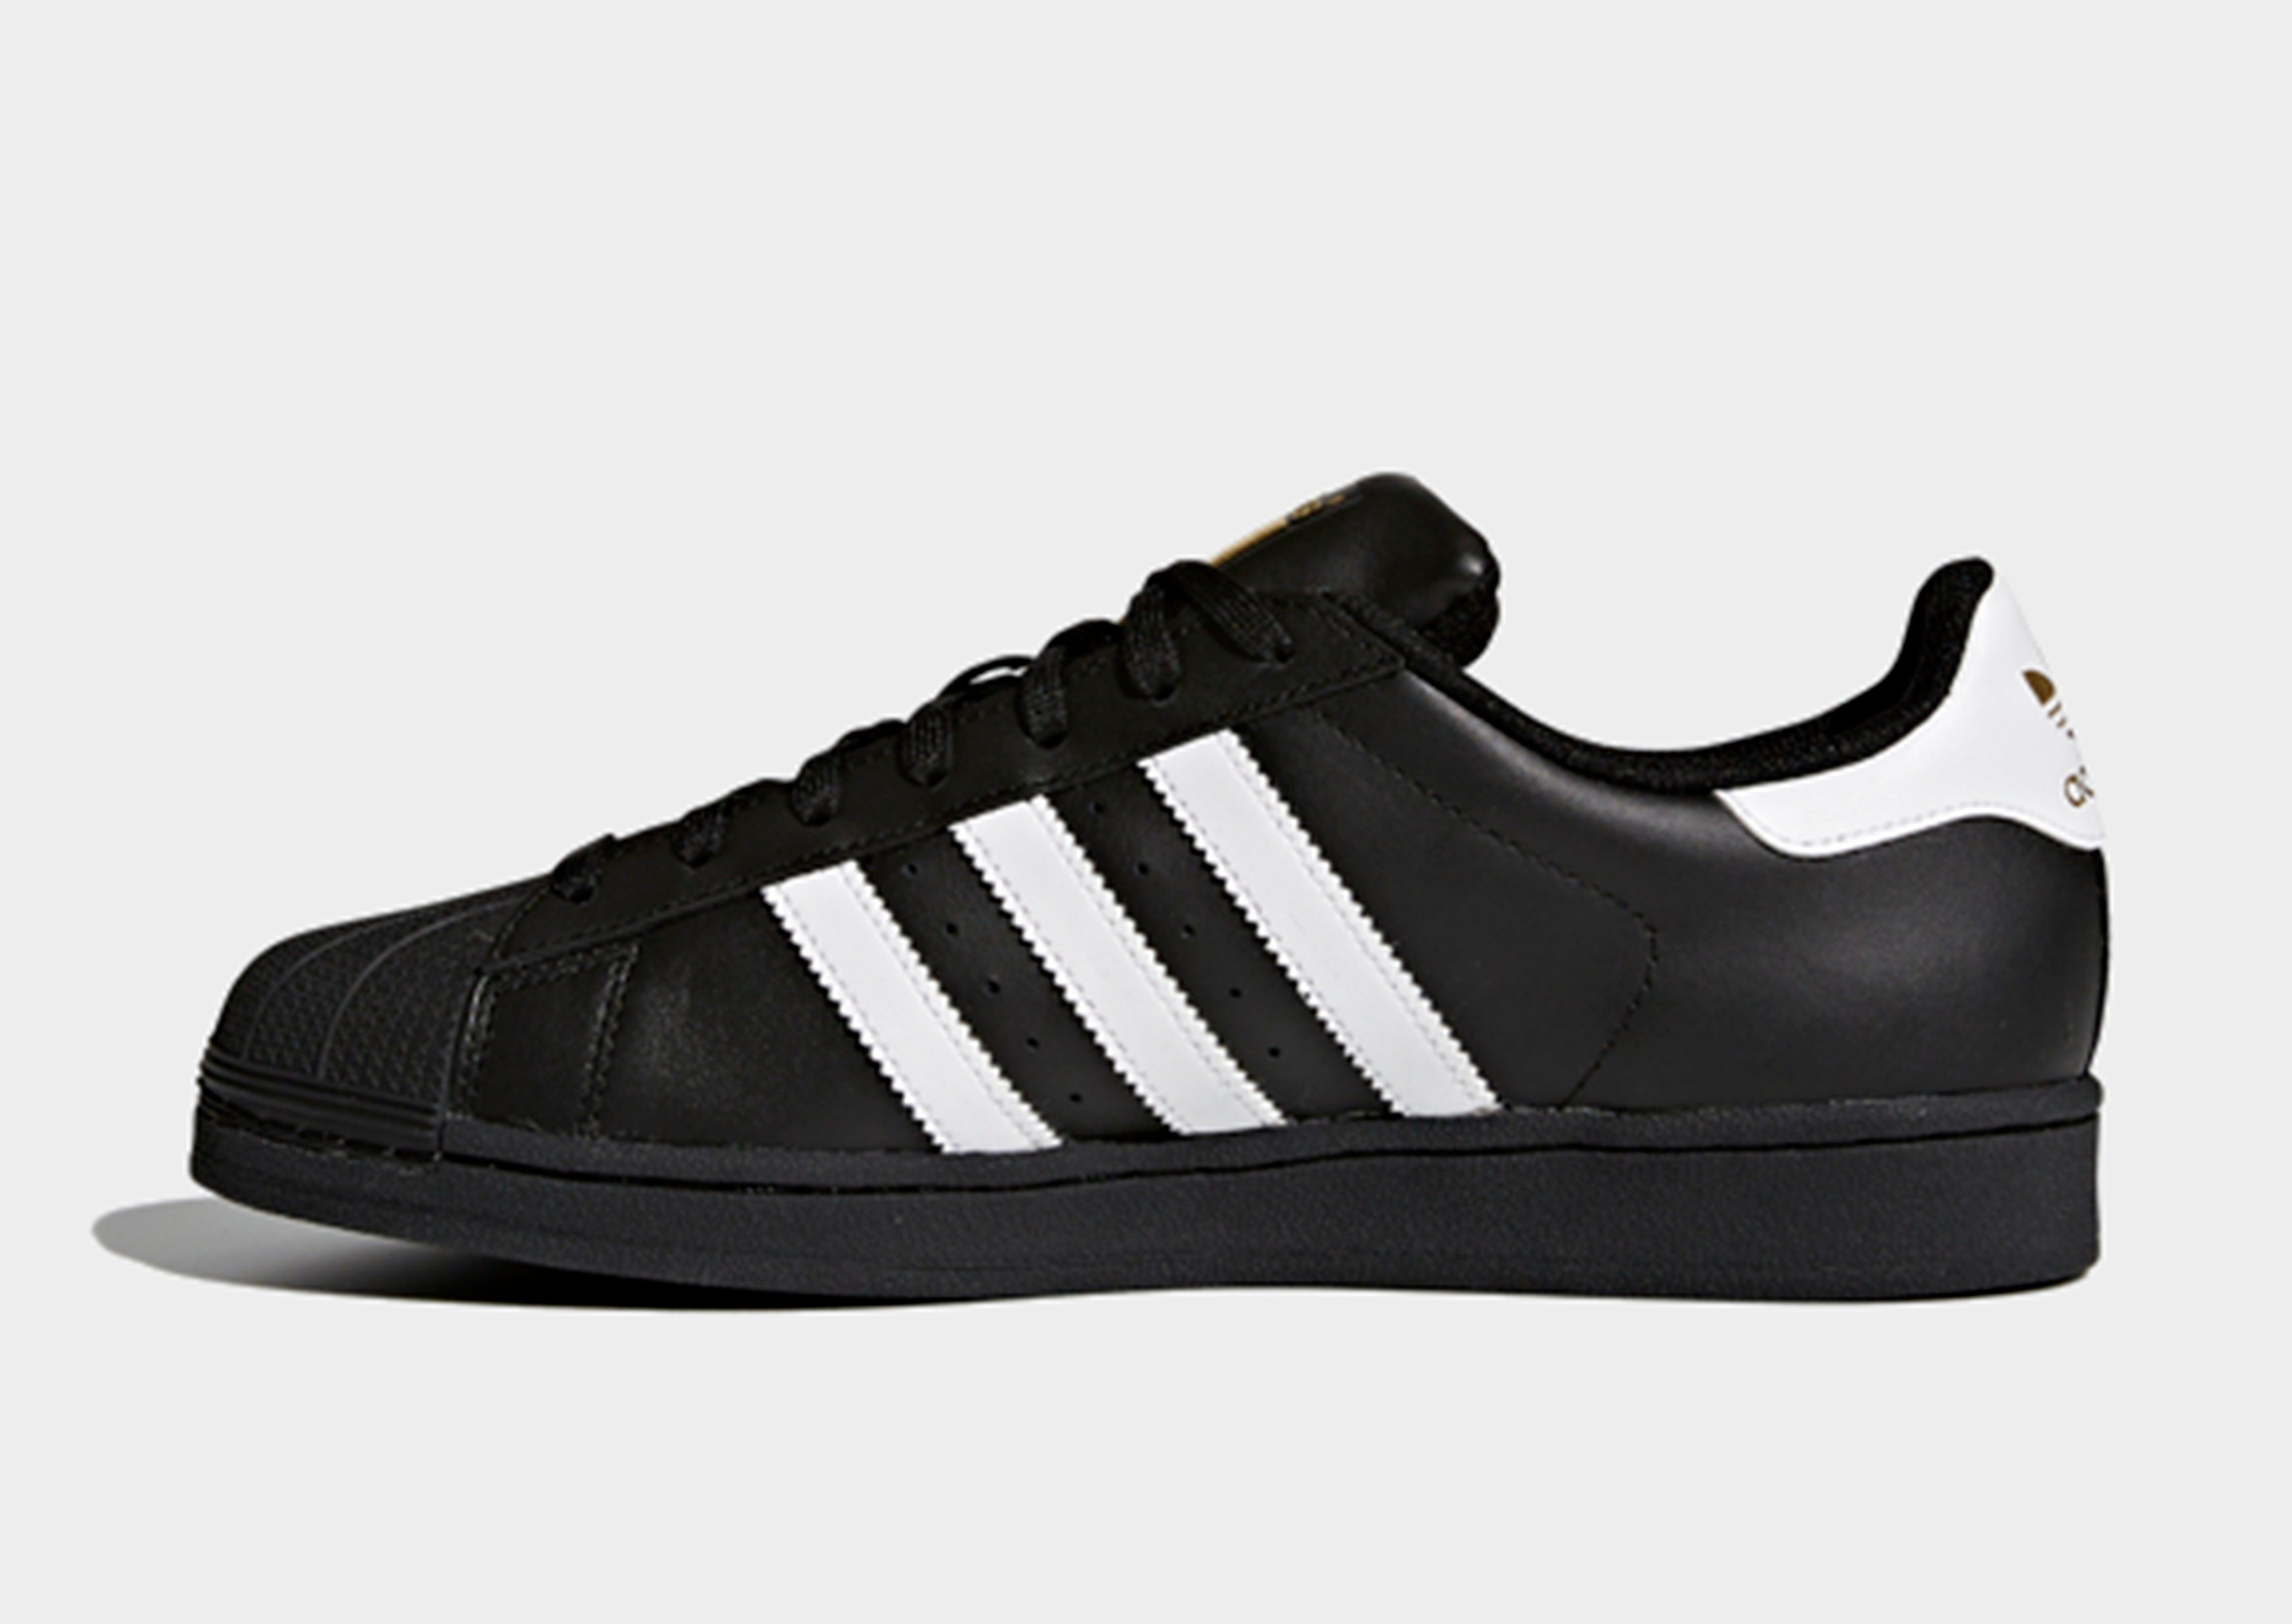 check out 8913b 29c74 ADIDAS Superstar Foundation Shoes   JD Sports